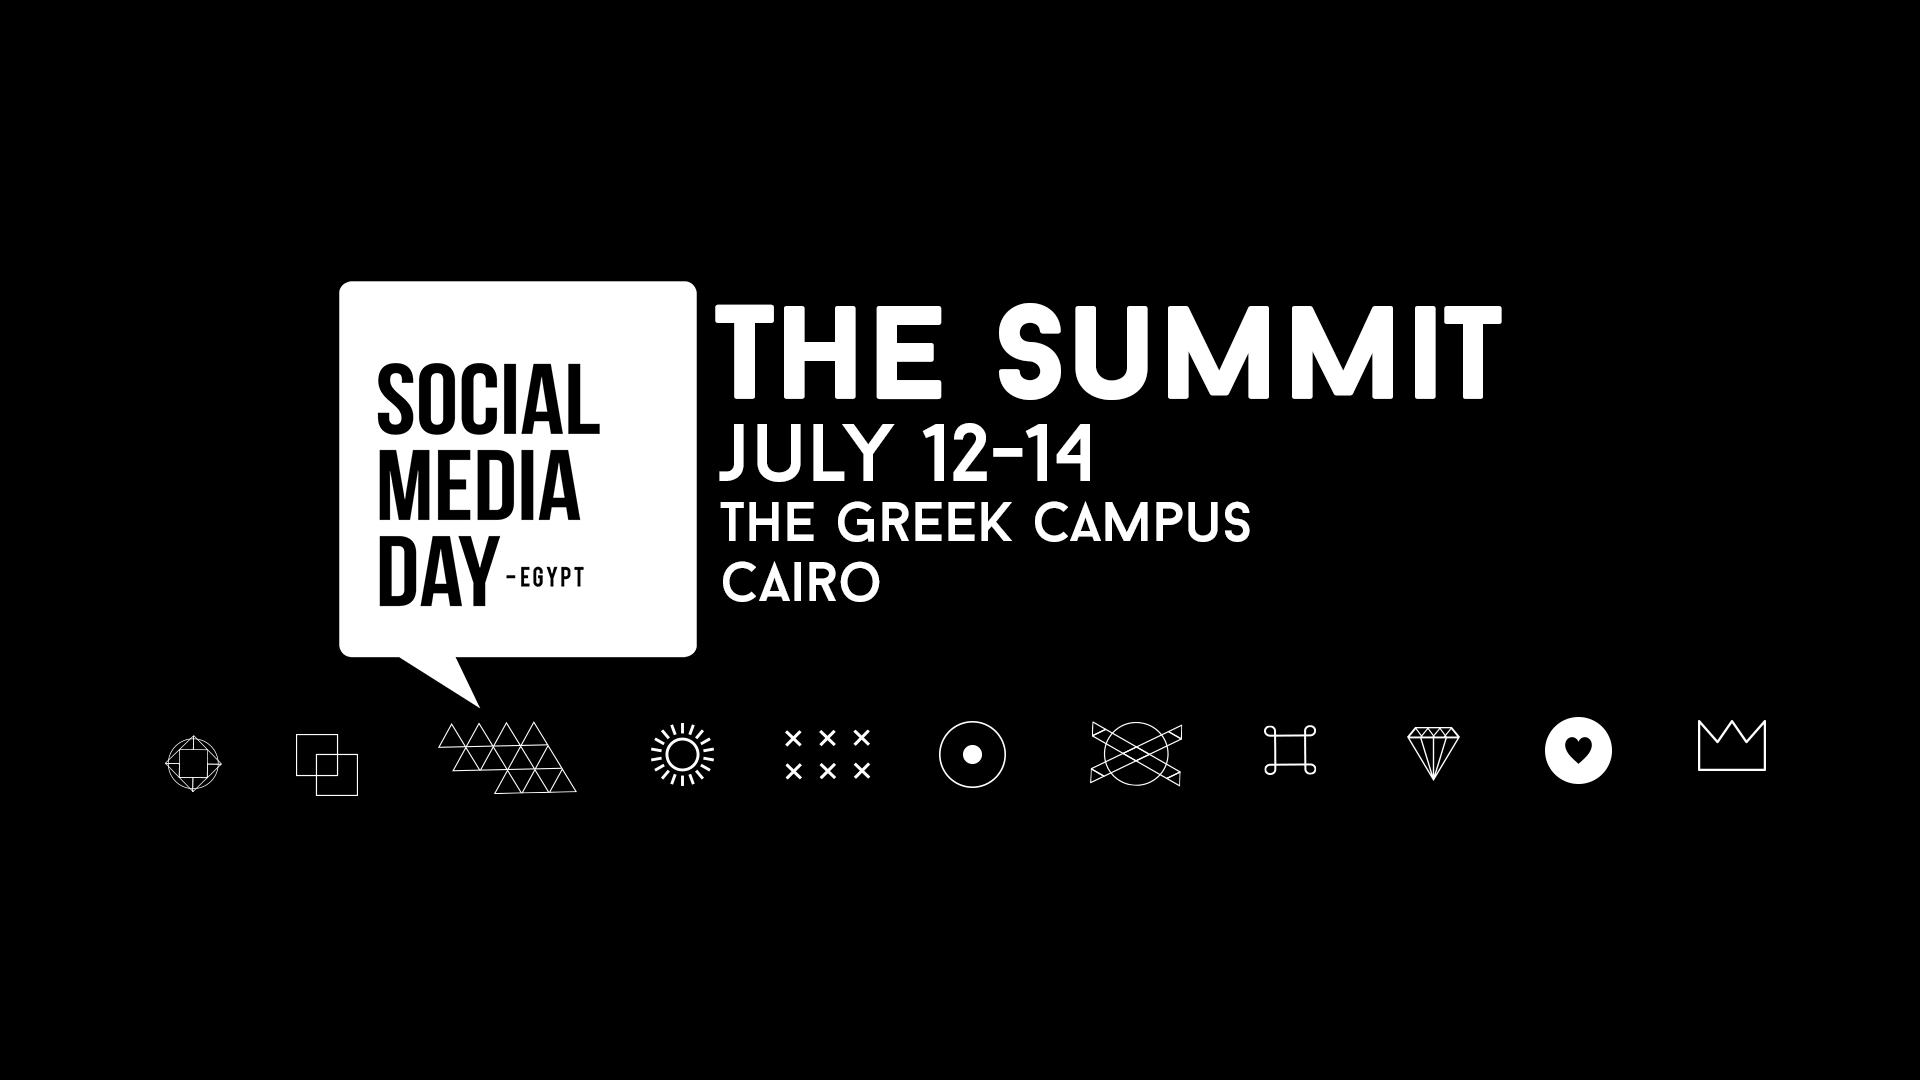 The 7th Social Media Day kicks off this Friday with 4,000 participants, 13 tracks and over 100 sessions